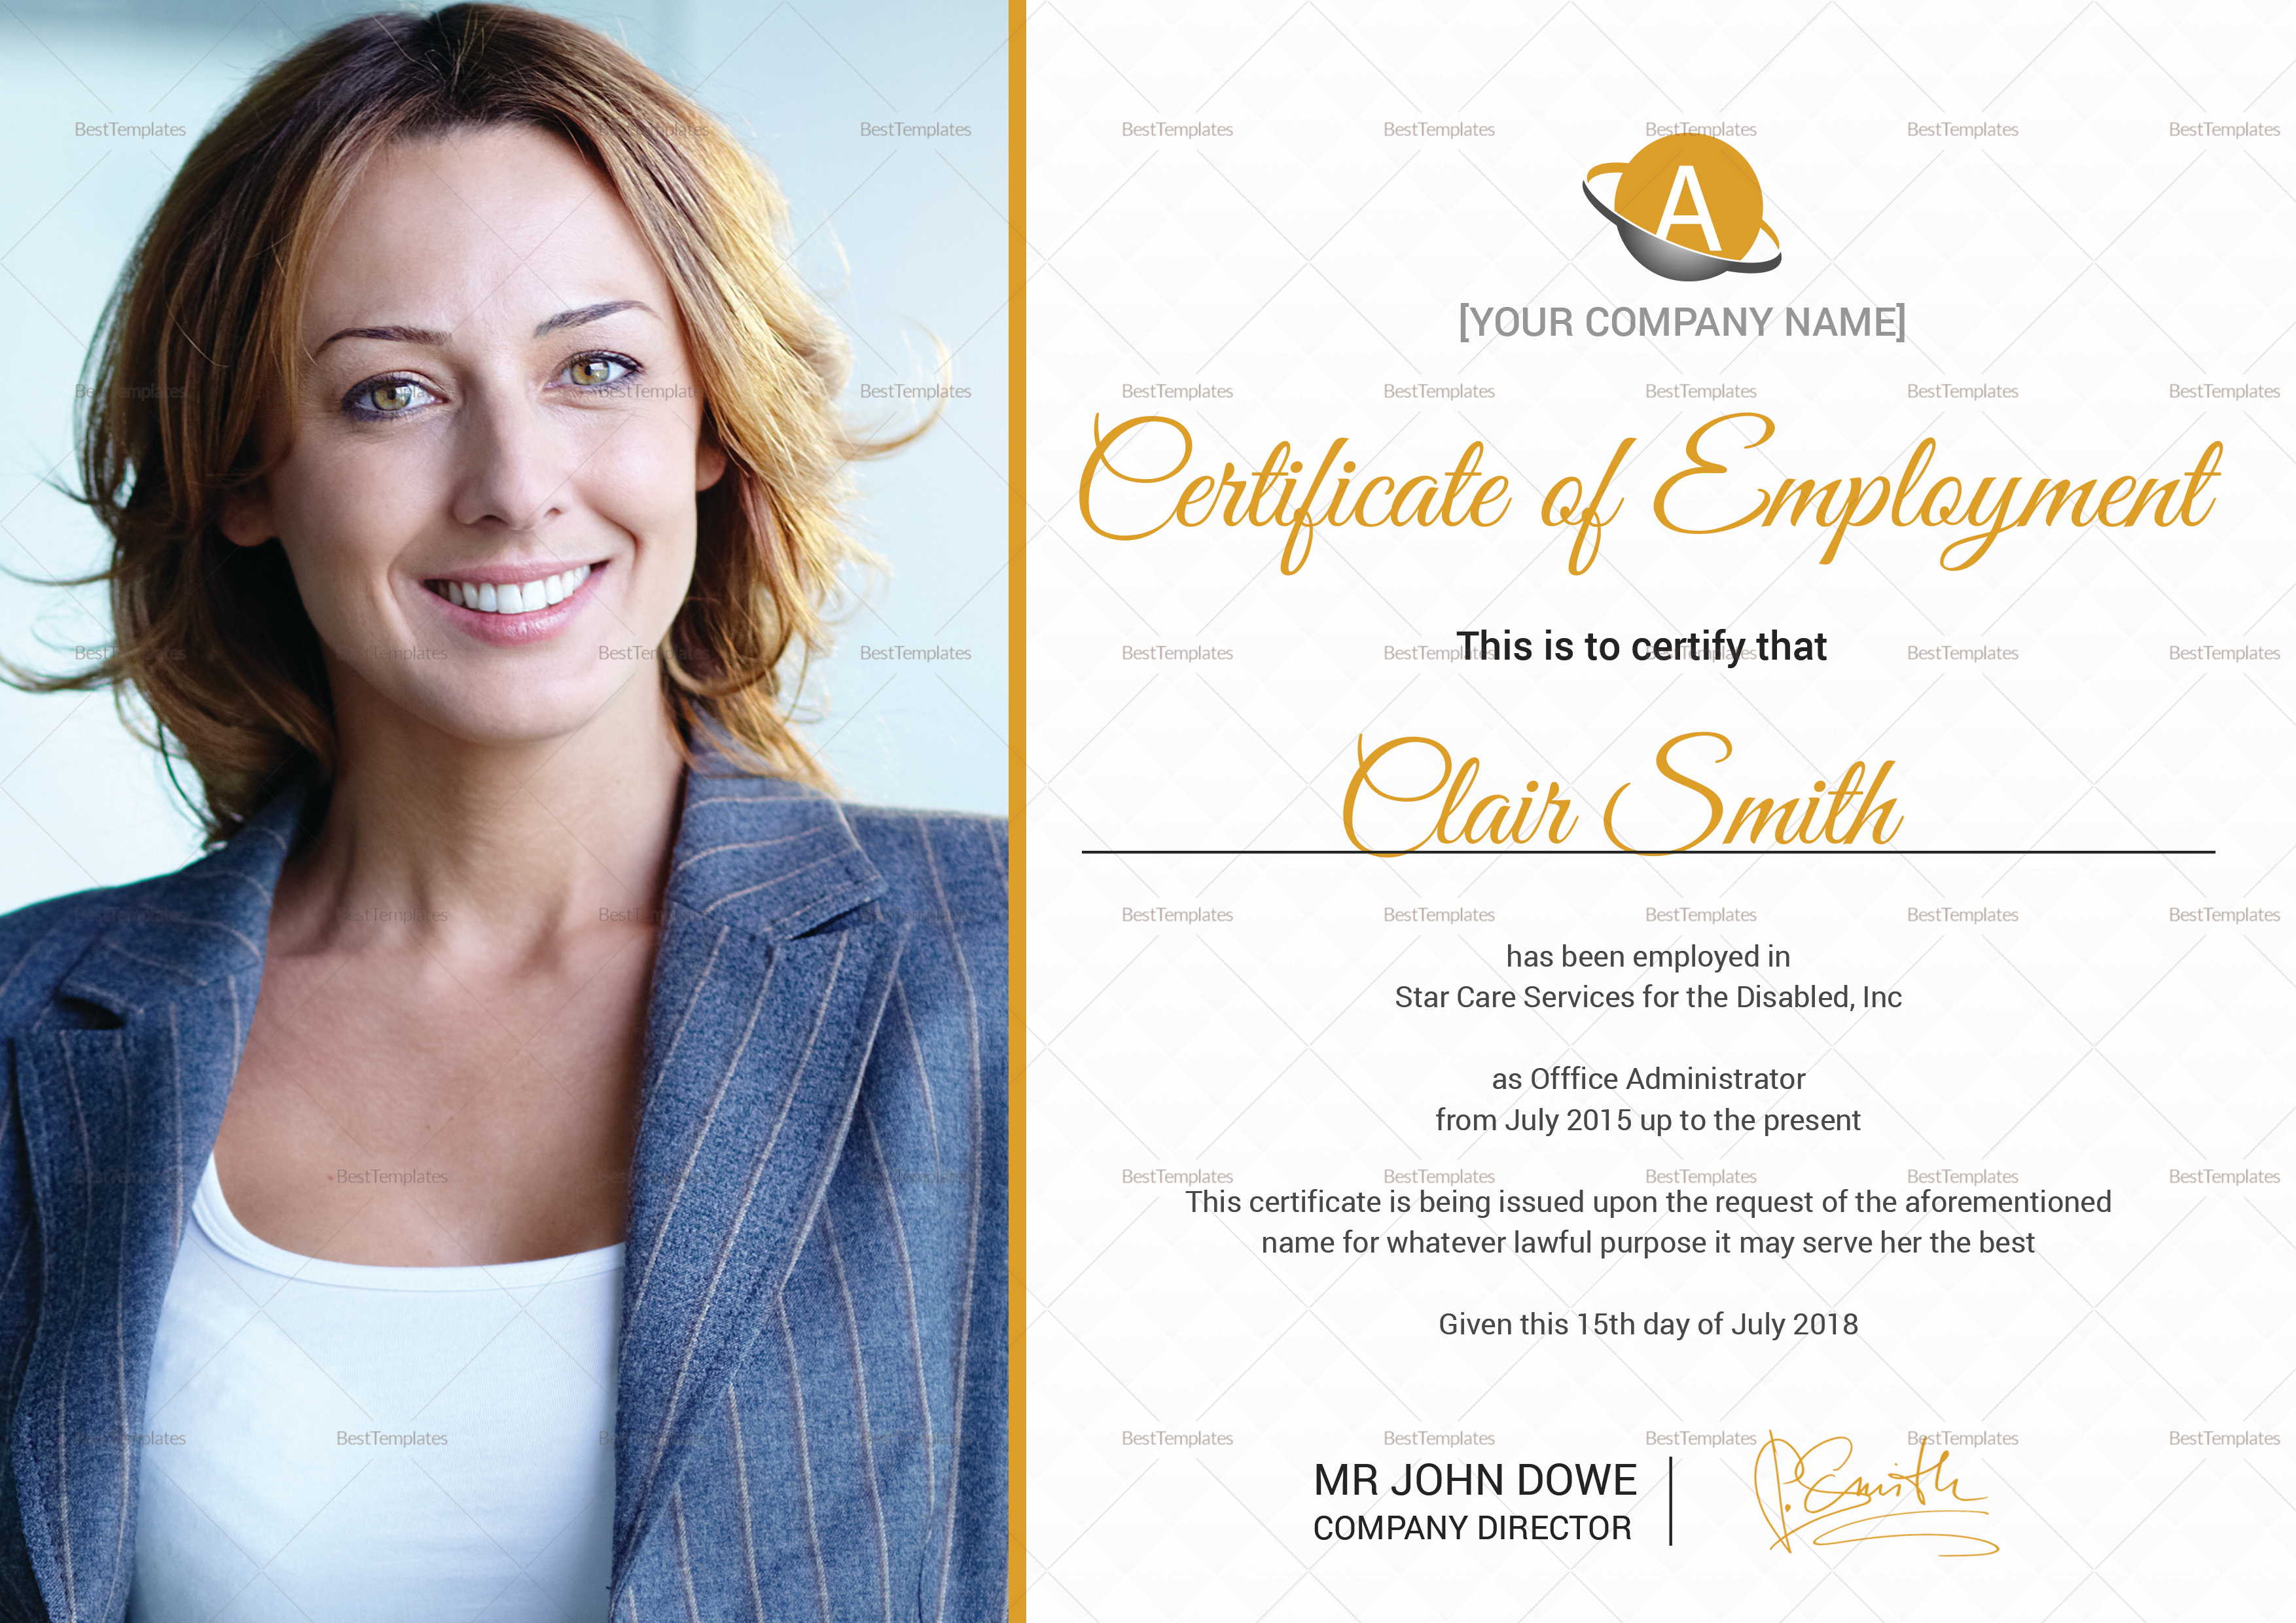 Skilled Employment Certificate Template